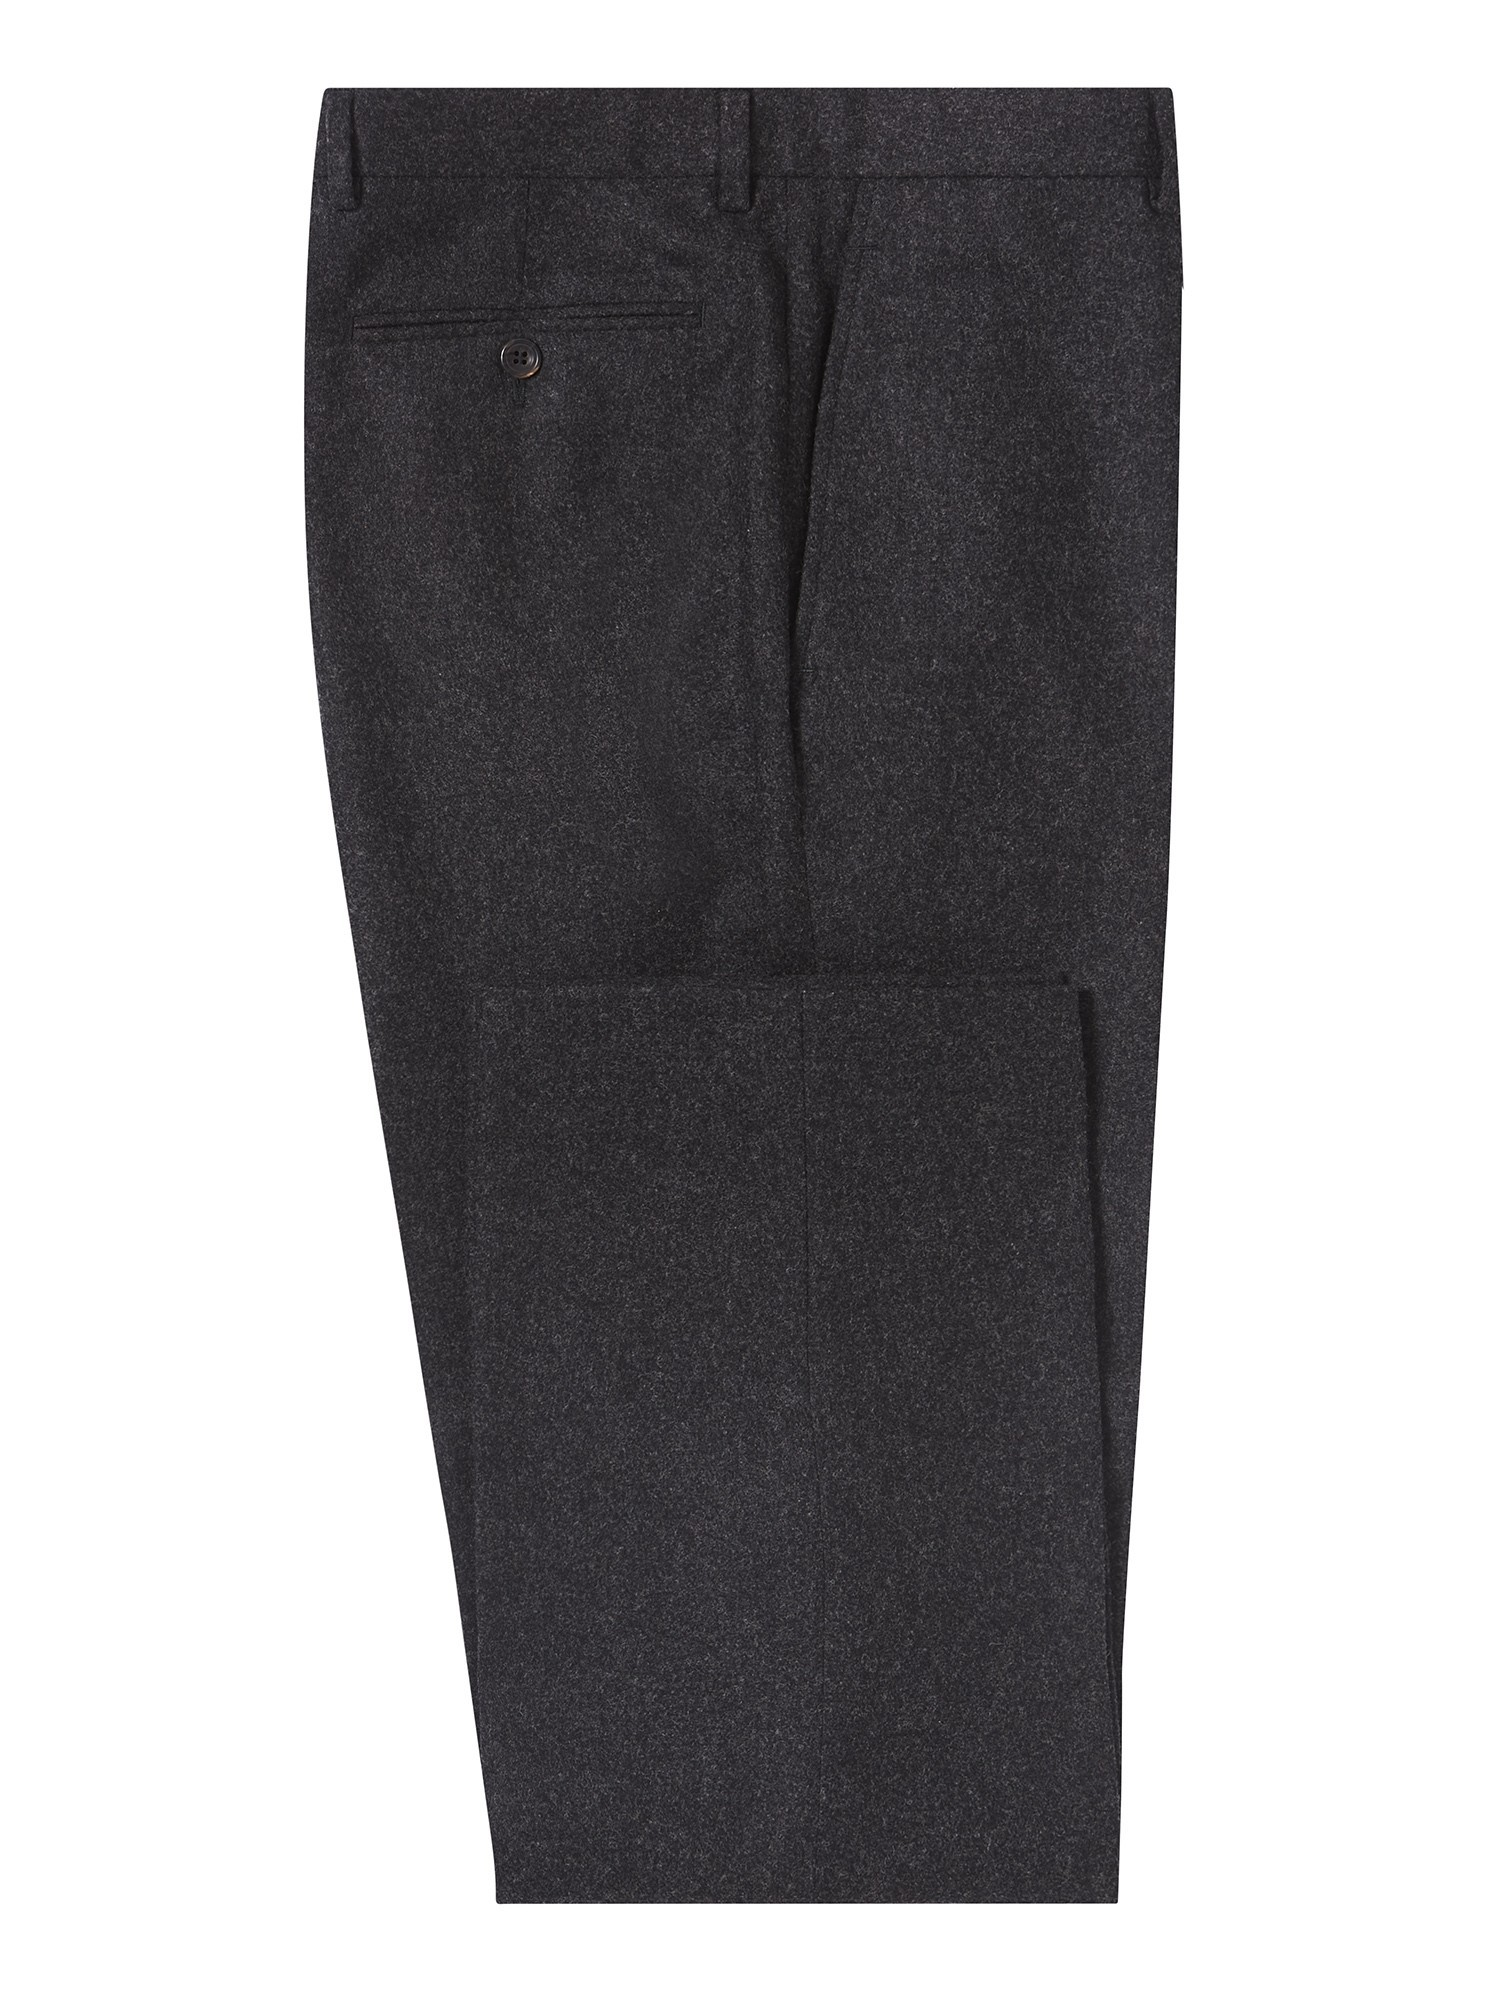 CHESTER BARRIE CHARCOAL WEST-OF-ENGLAND FLANNEL TROUSERS